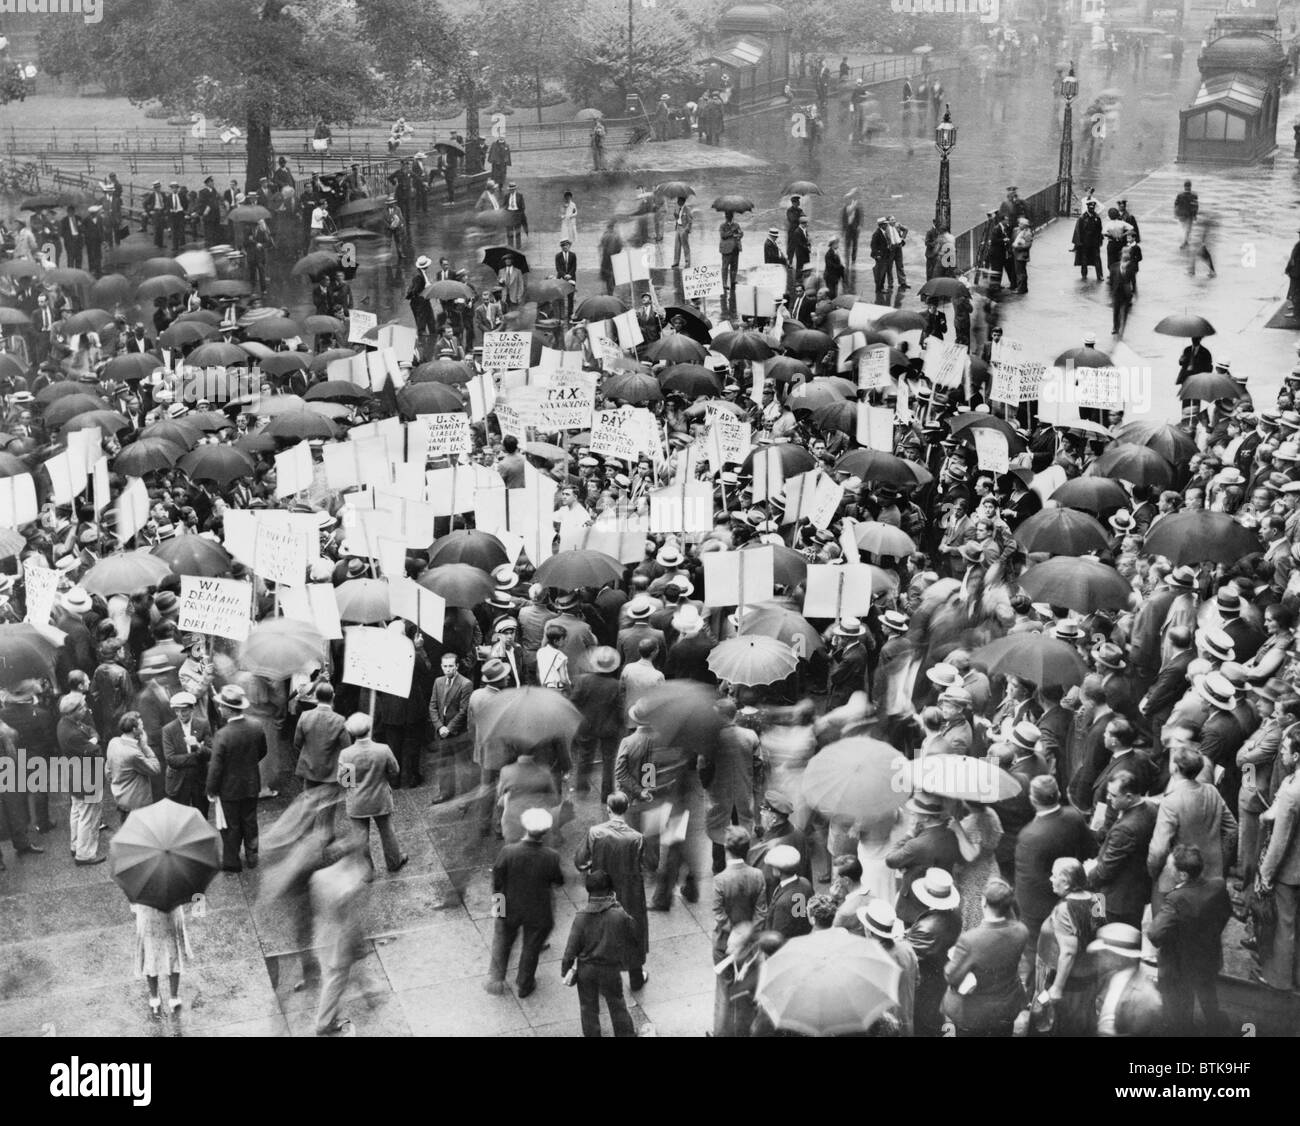 The Great Depression. A crowd of depositors protest in the rain at the Bank of United States after its failure. - Stock Image